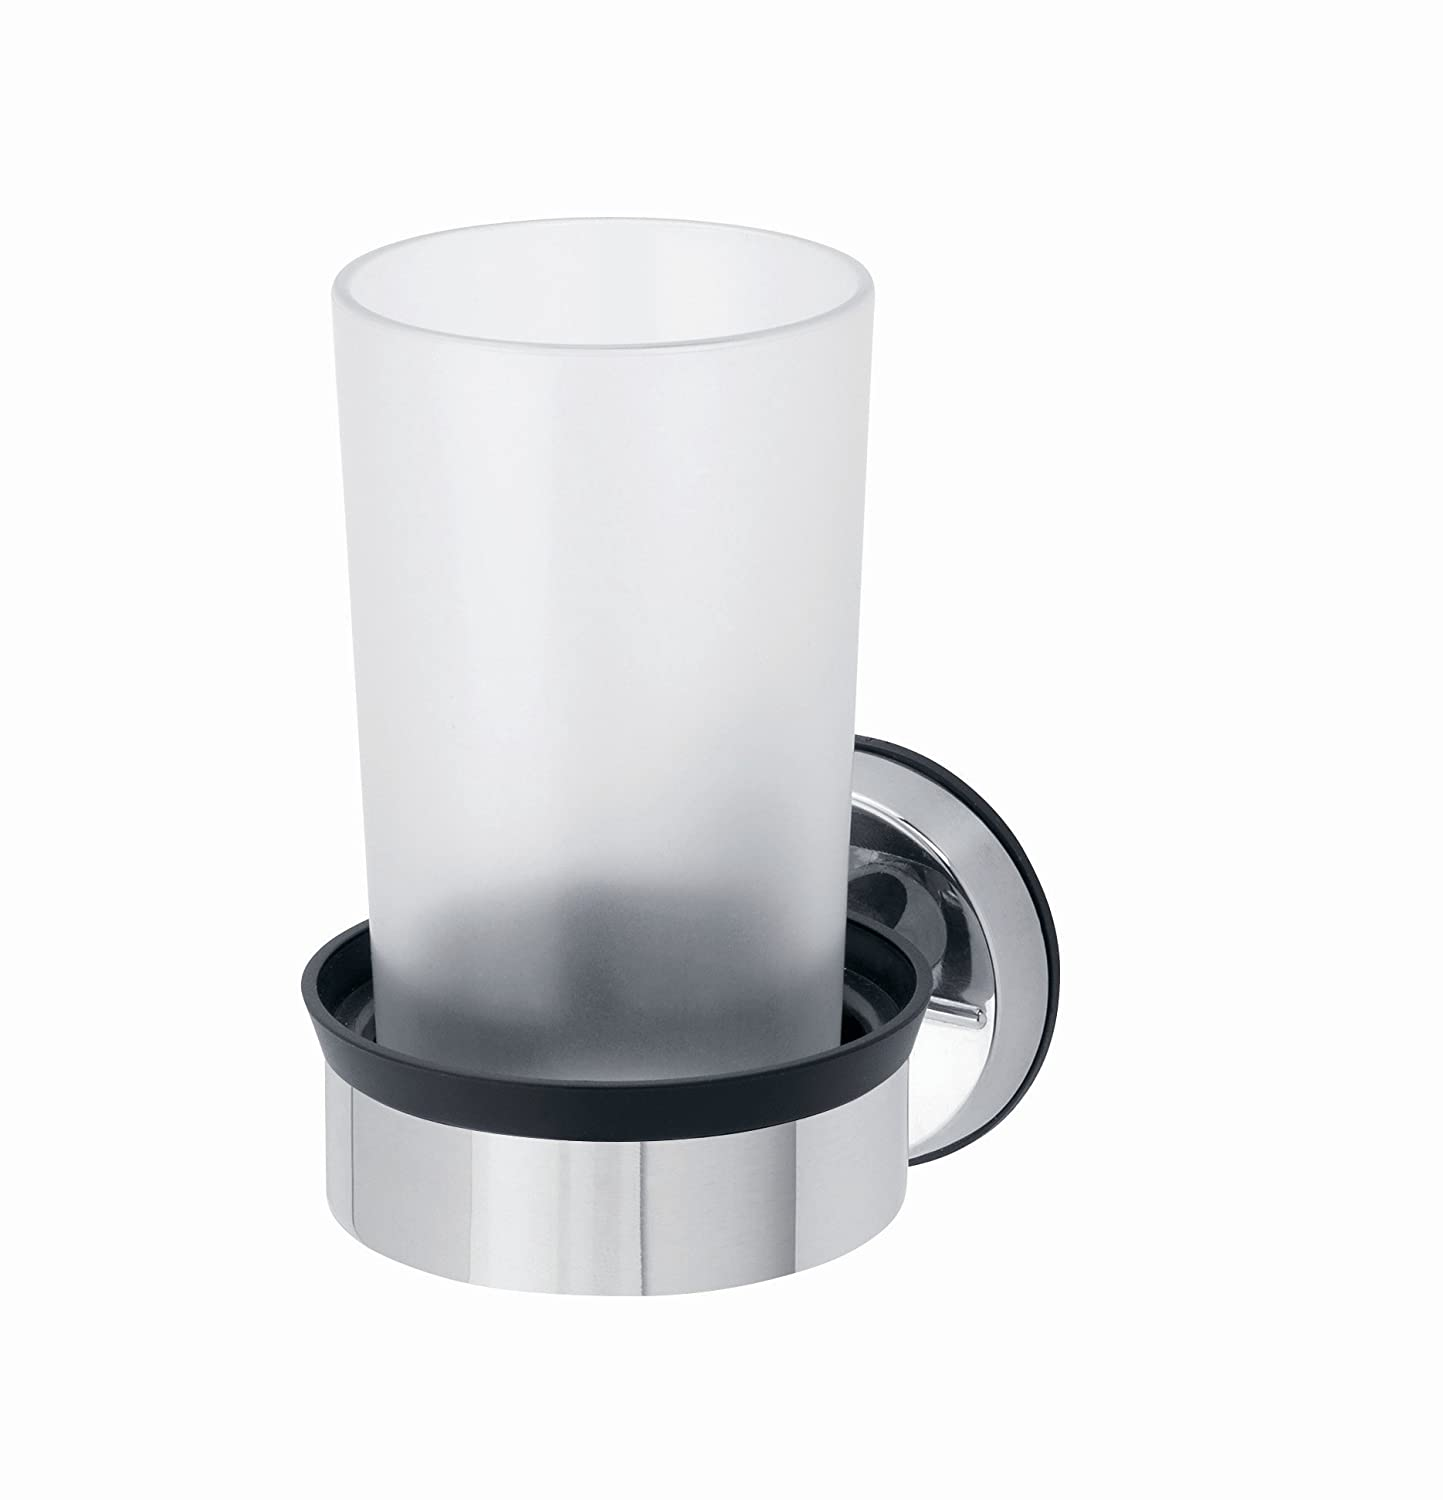 Brabantia Single Cup Holder - Brilliant Steel 399947 Bathroom Bathroom_Accessories Bathroom_Storage